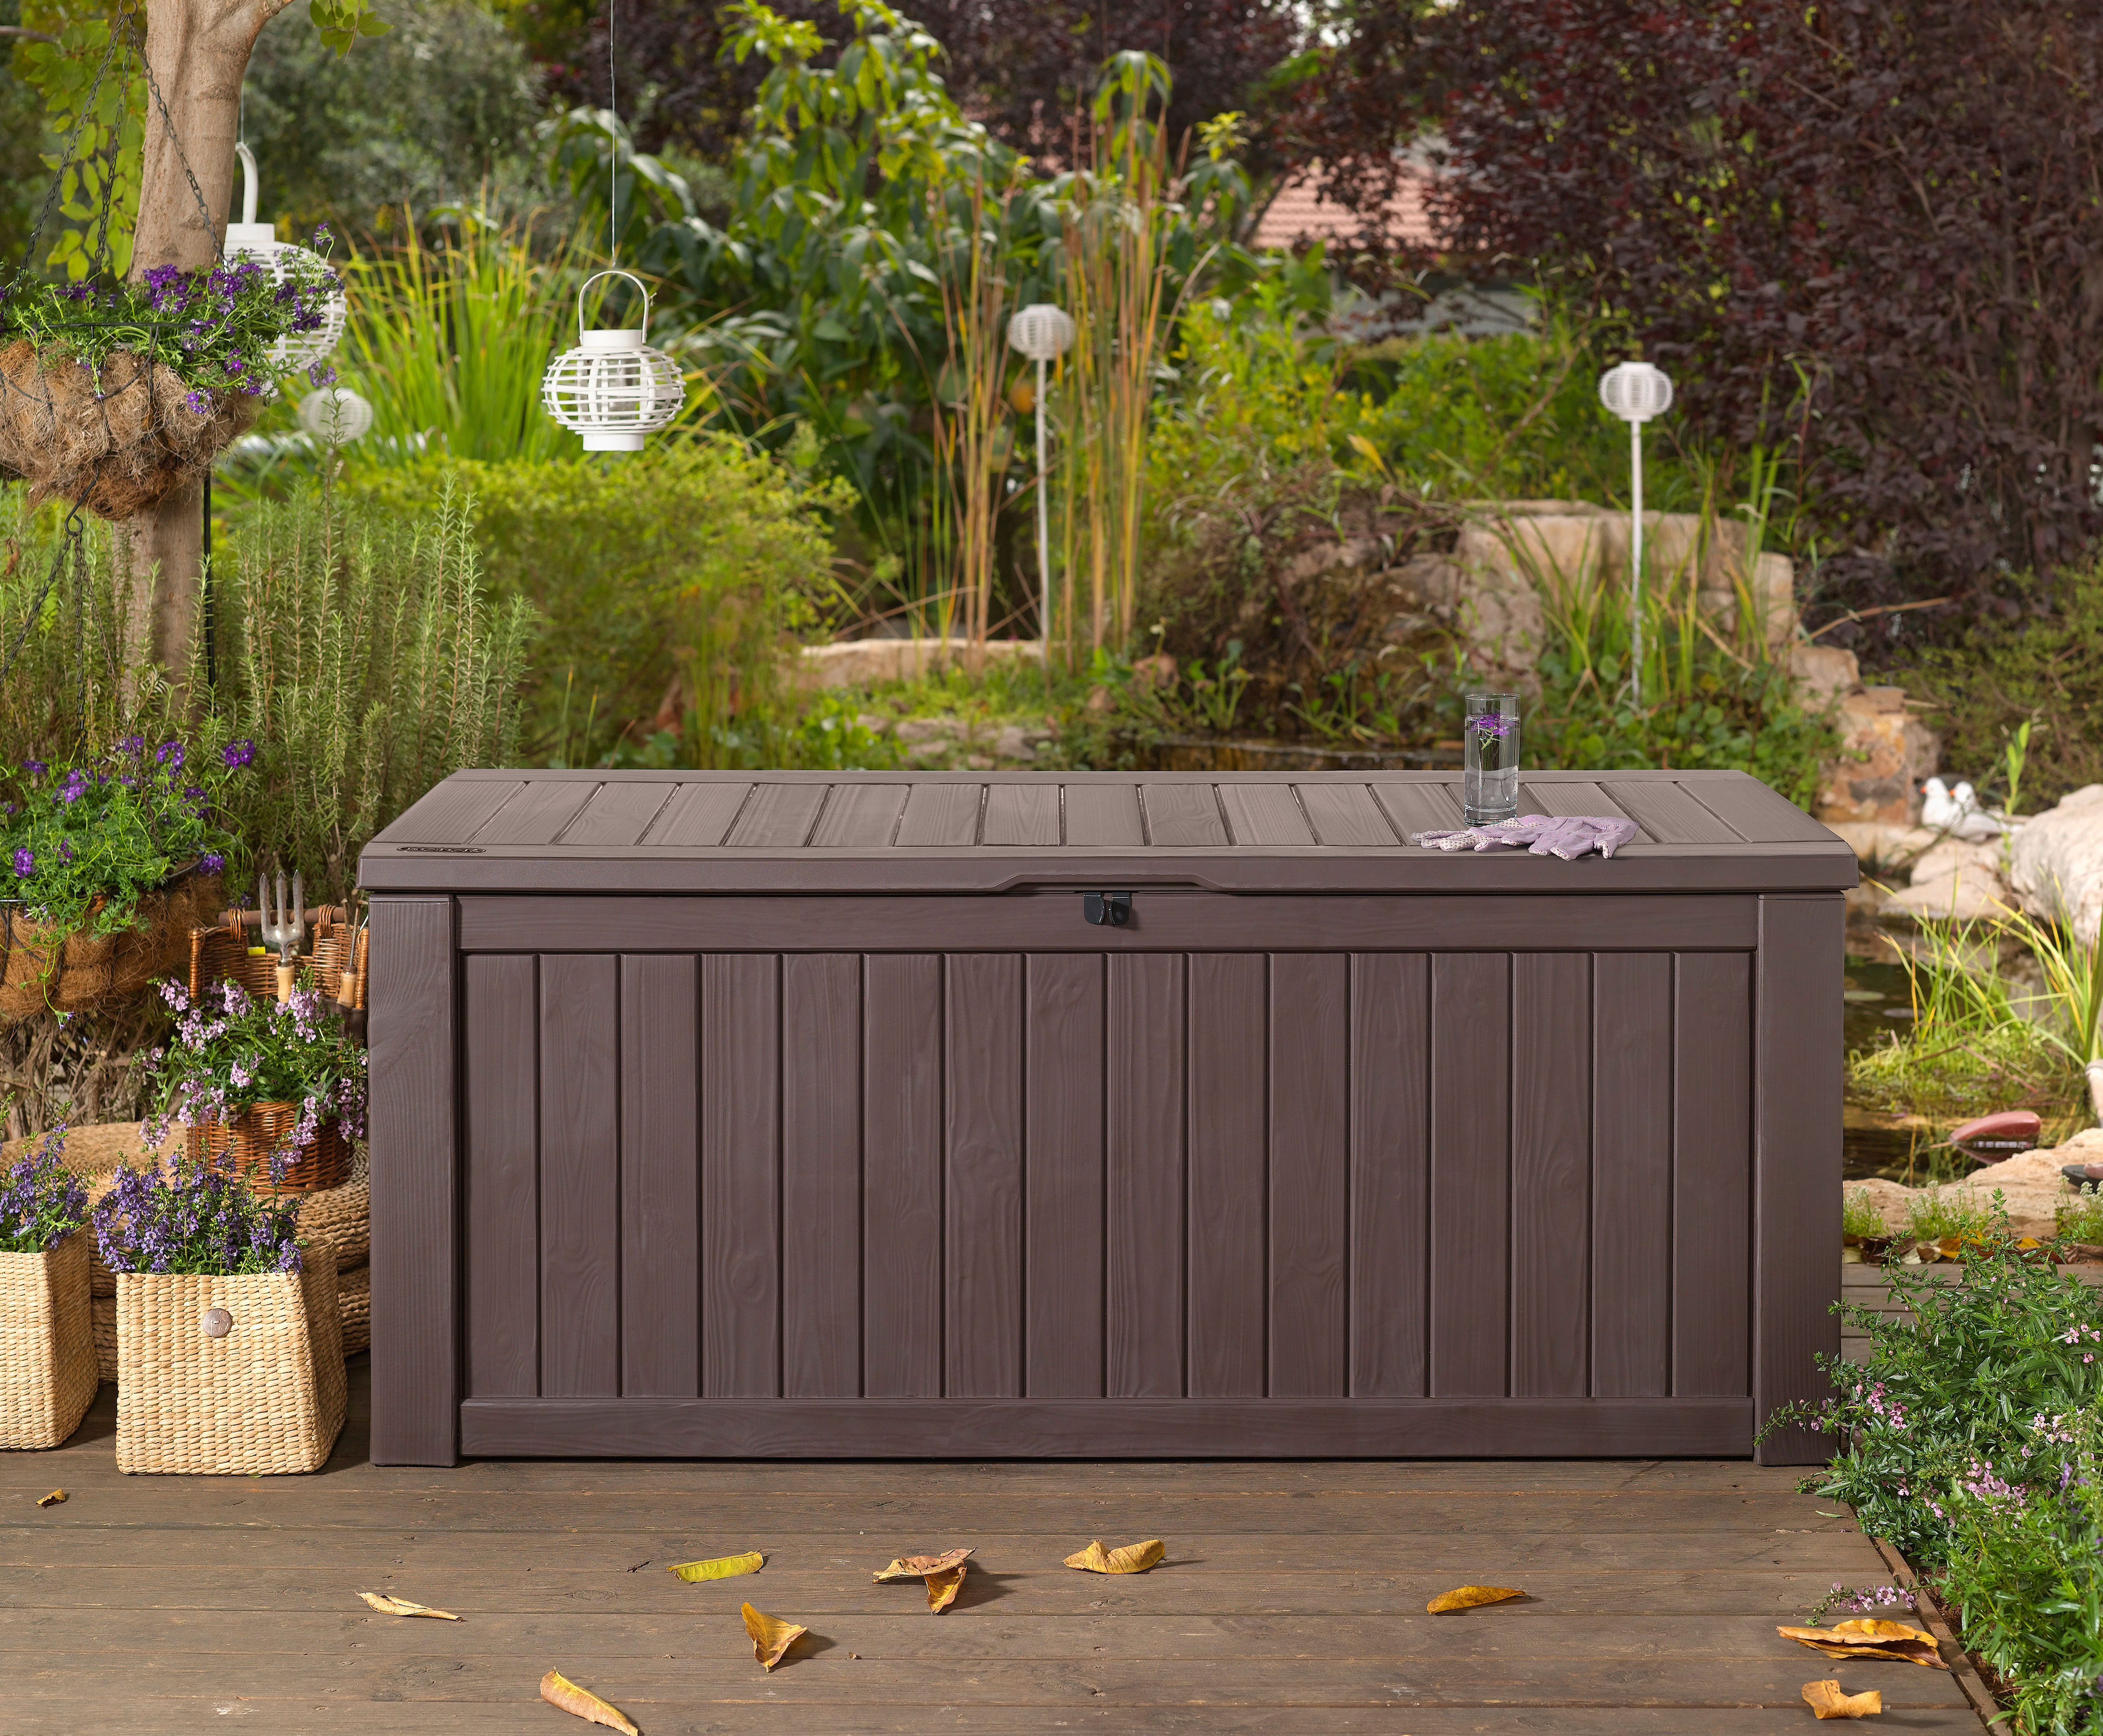 570L KETER STORAGE BOX BENCH SEATING WATERPROOF GARDEN RESIN FURNITURE. LOCKABLE | eBay